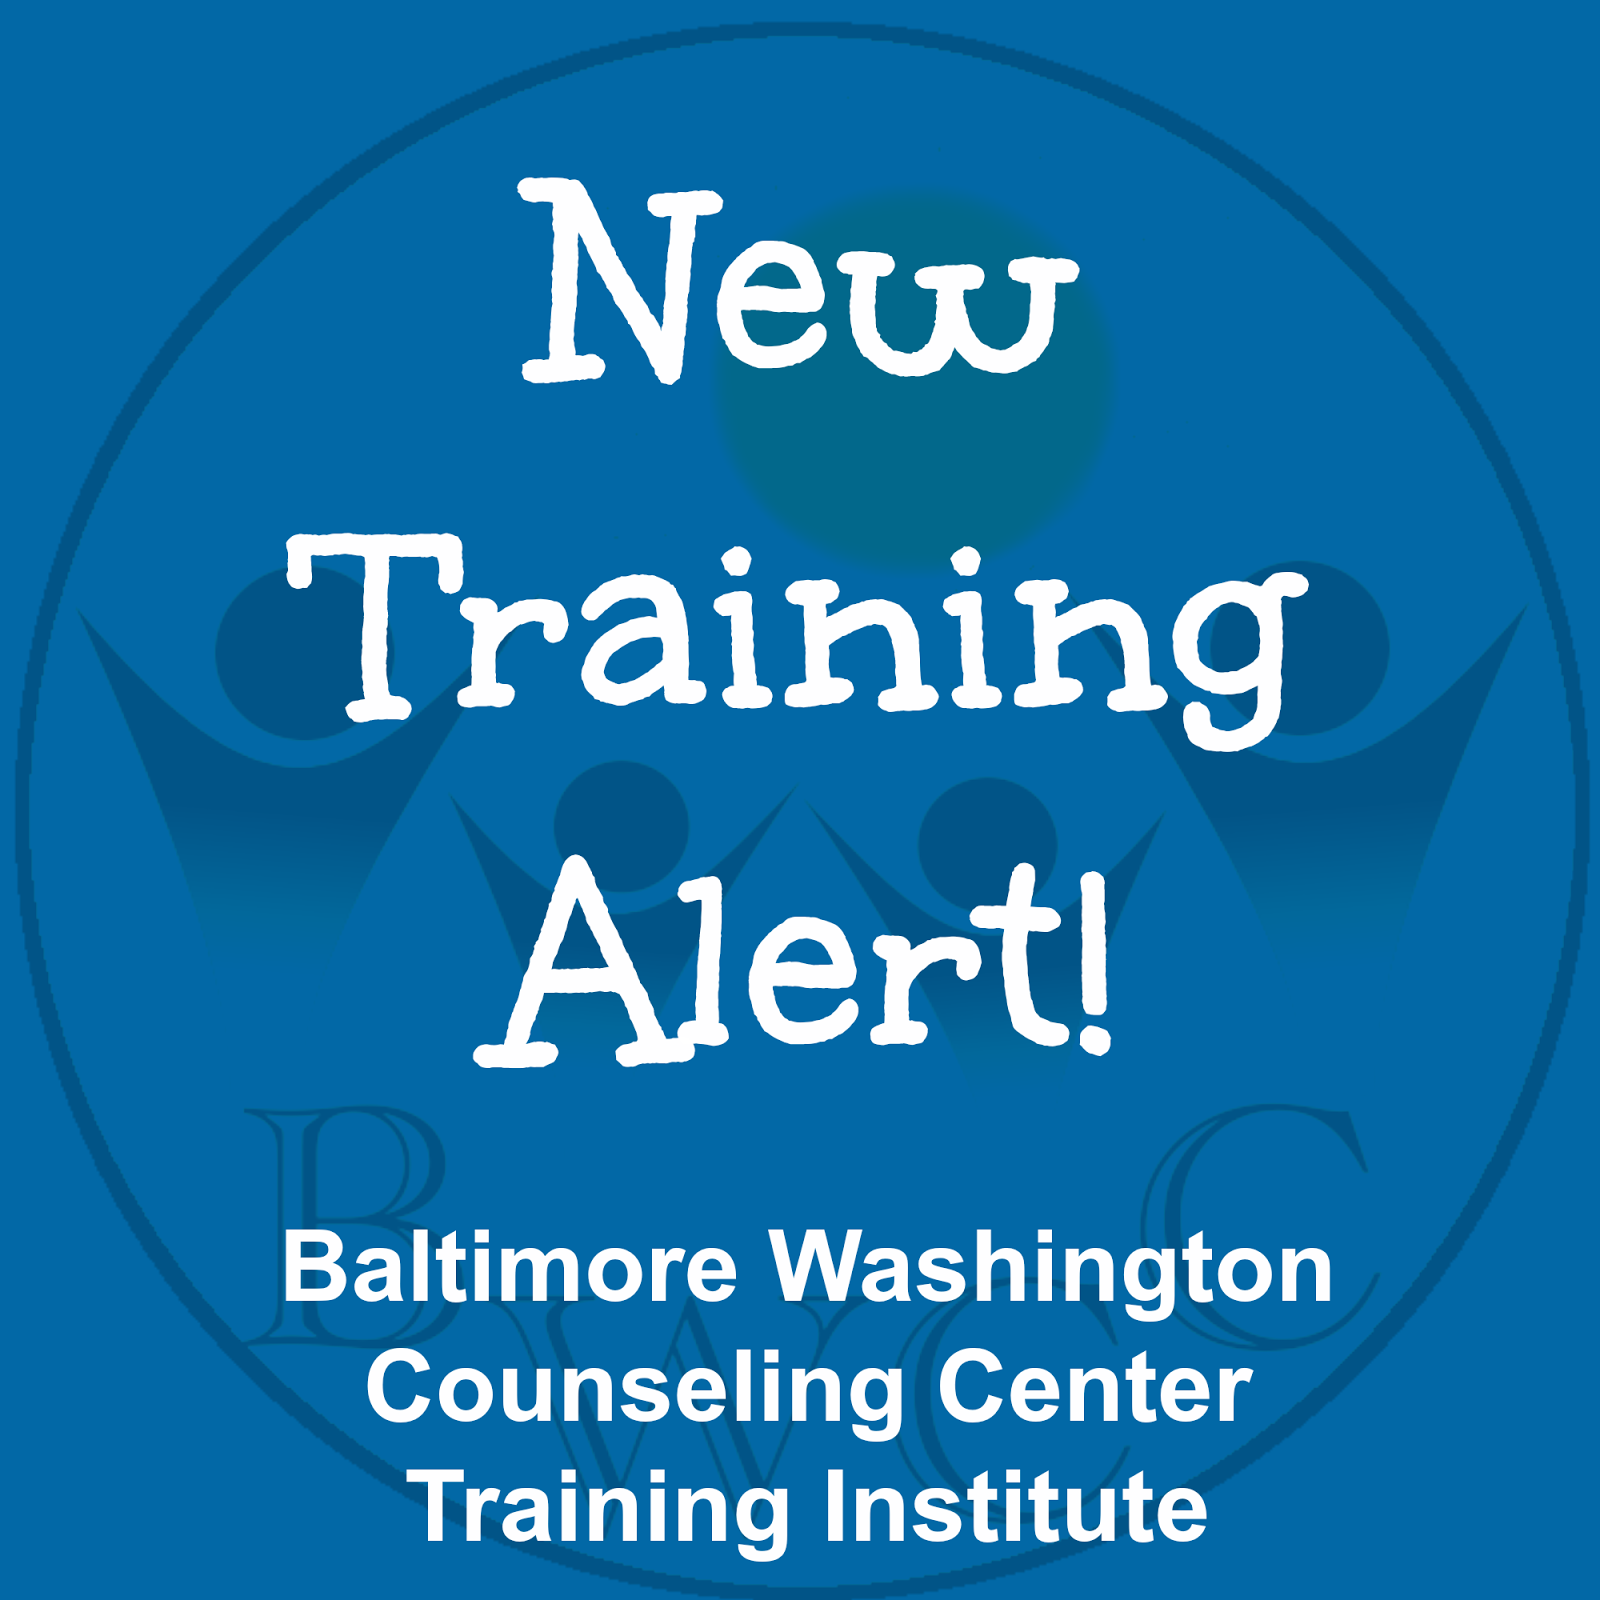 {Training Institute} Art Therapy: Effective Treatment Options for Outpatient Setting, February 27, 2015 in Millersville, MD